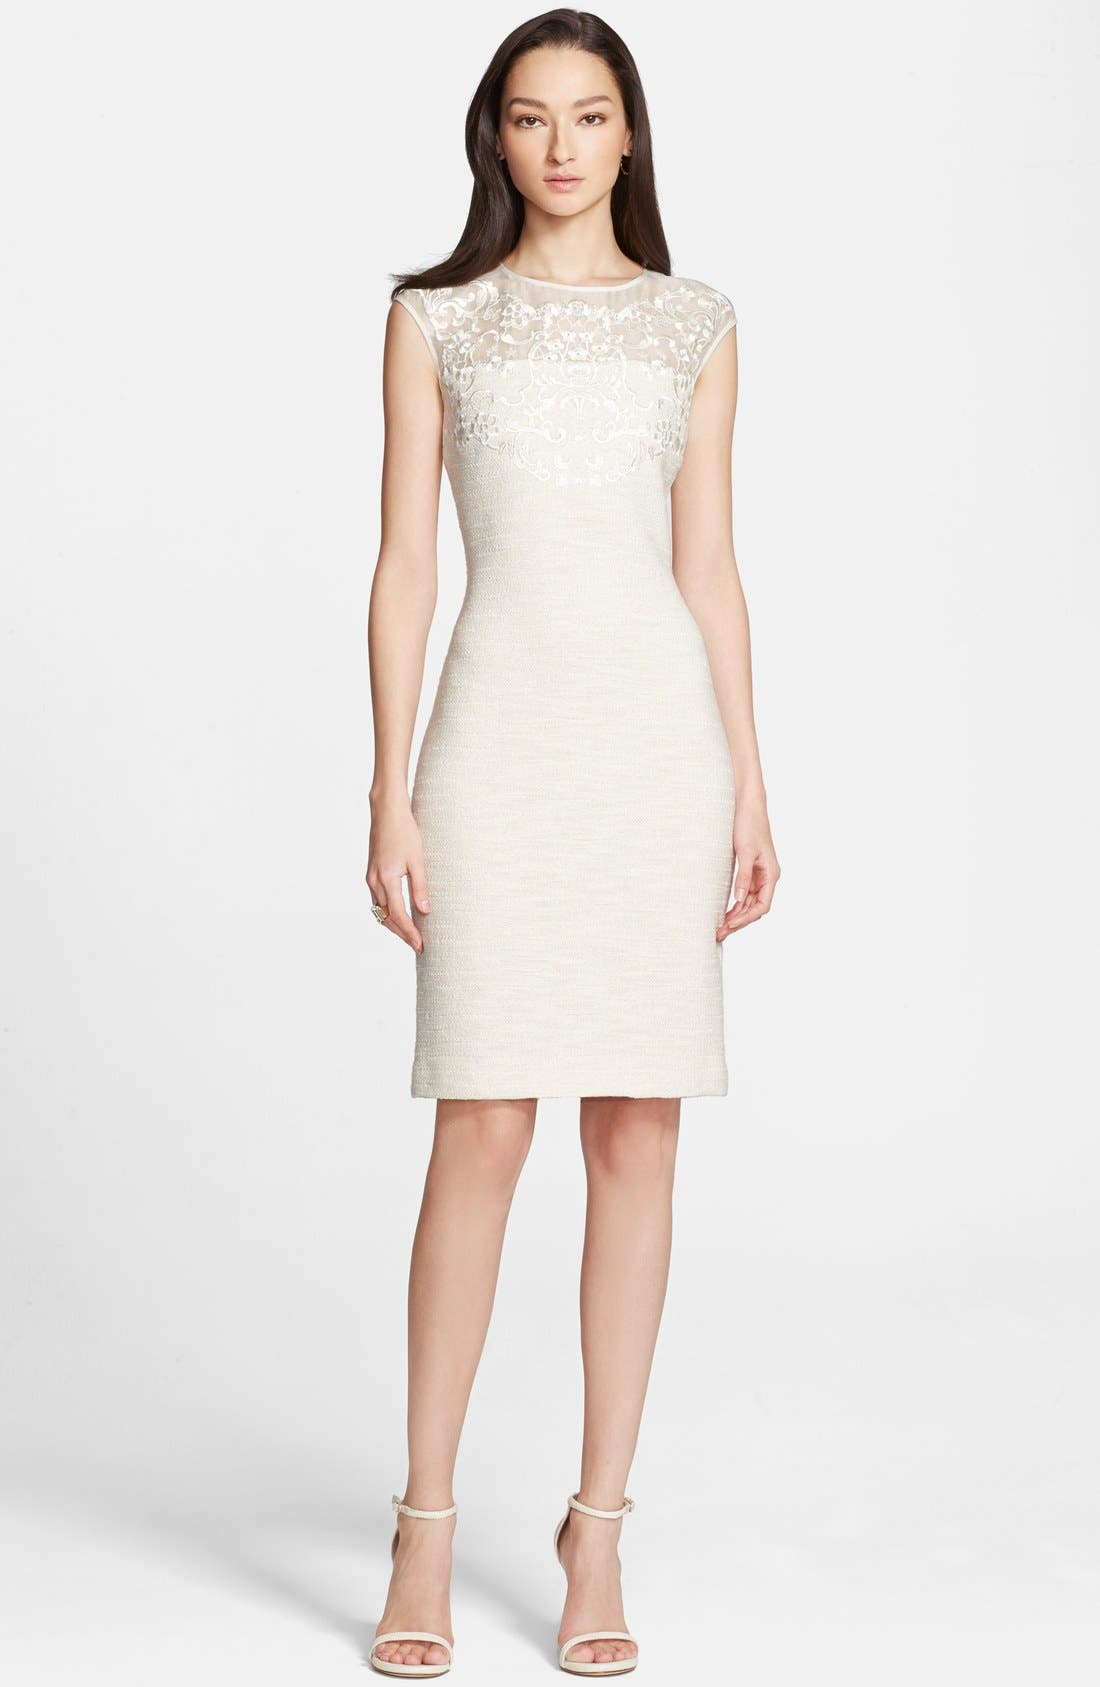 Main Image - St. John Collection Sparkle Shantung Knit Dress